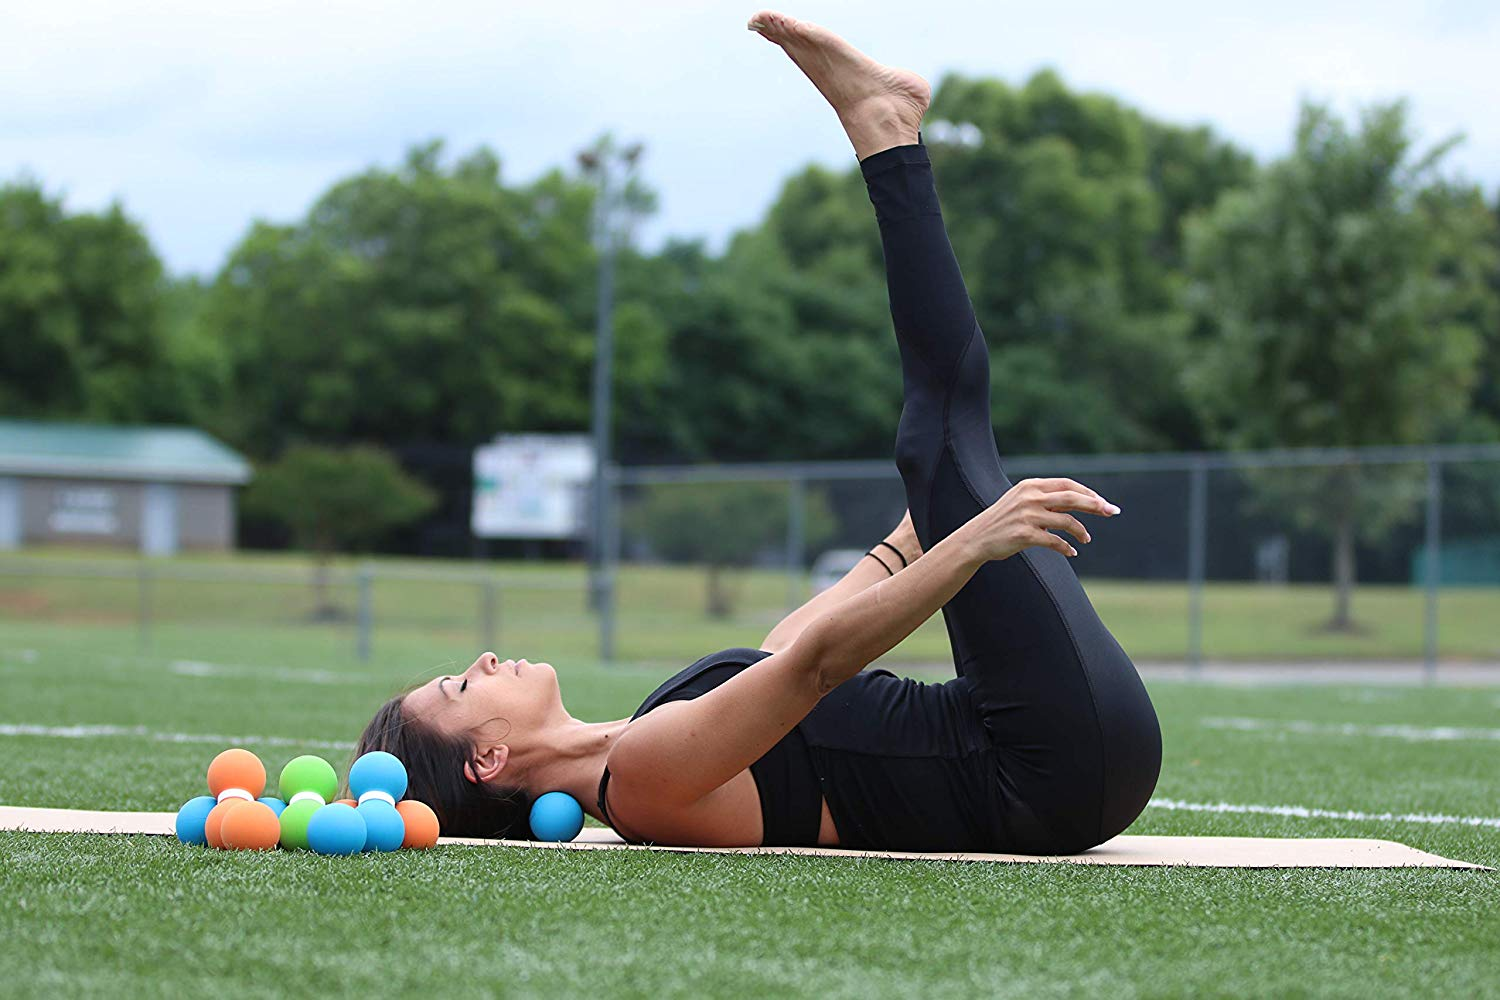 a woman stretching with lacrosse balls